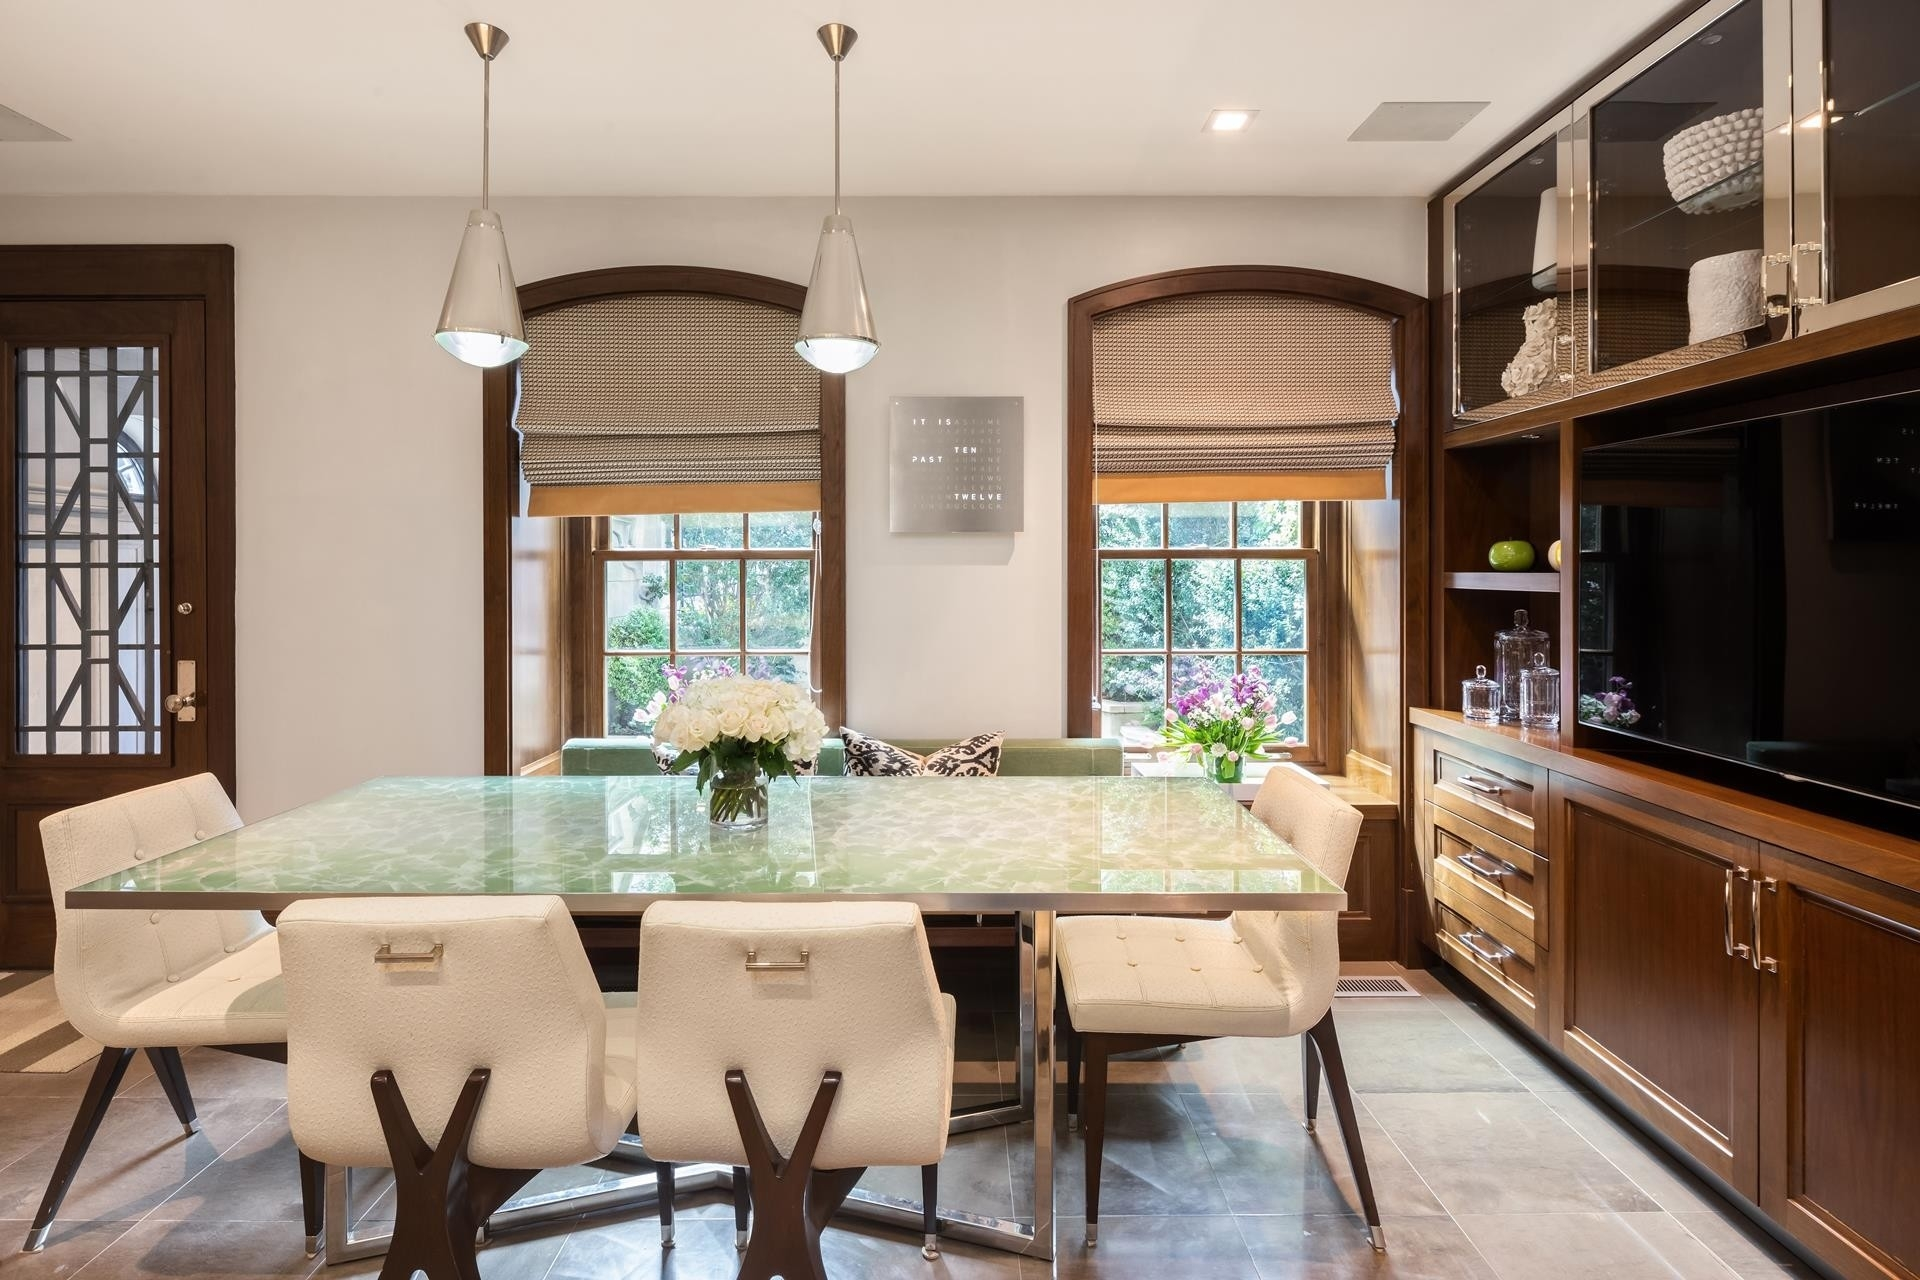 10. Single Family Townhouse for Sale at 159 E 61ST ST , TOWNHOUSE Lenox Hill, New York, NY 10065